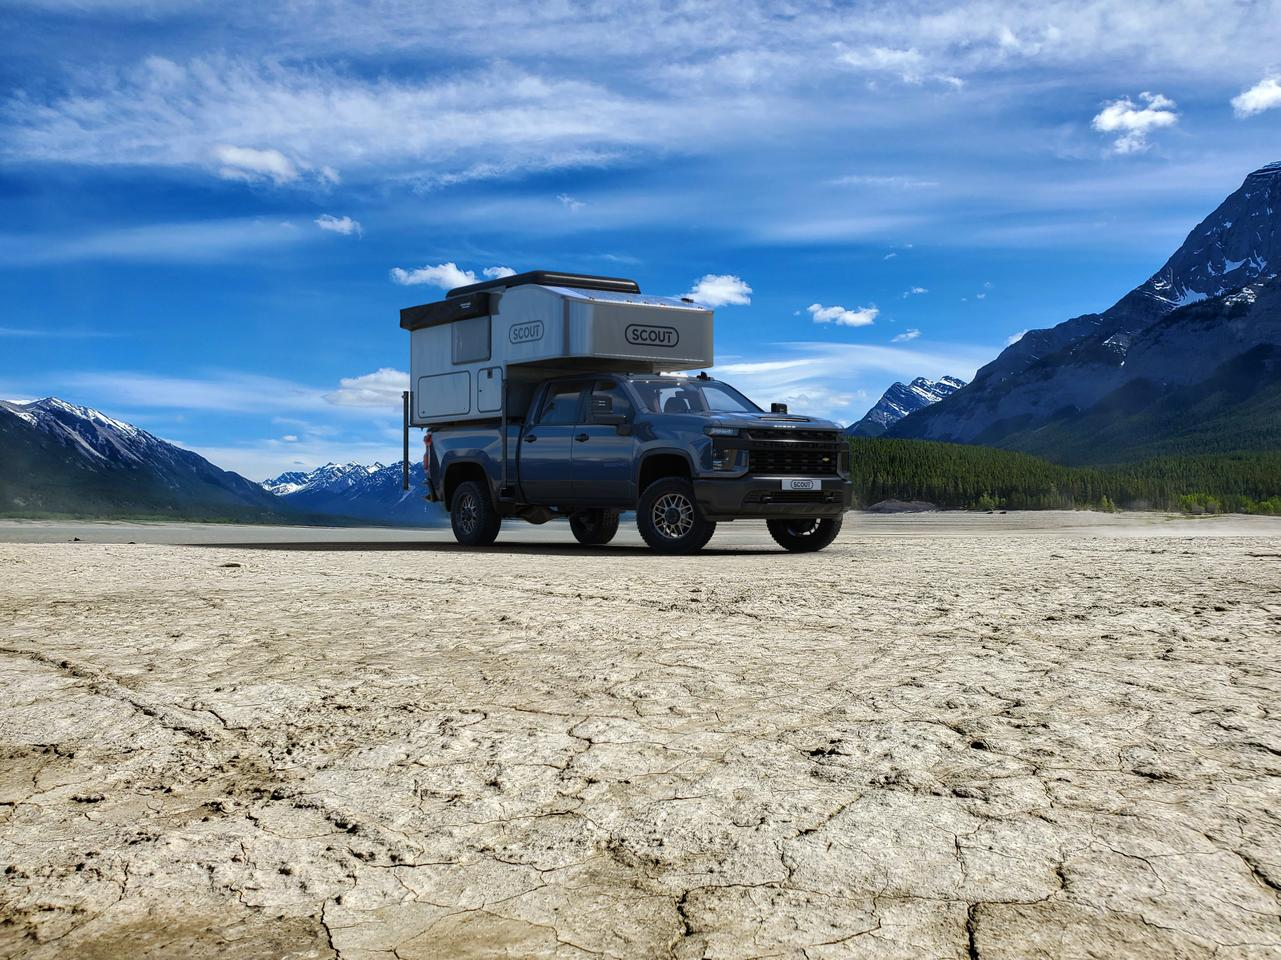 With a base weight of 1,370 lb before options, the new Scout Kenai will fit nicely on a variety of trucks